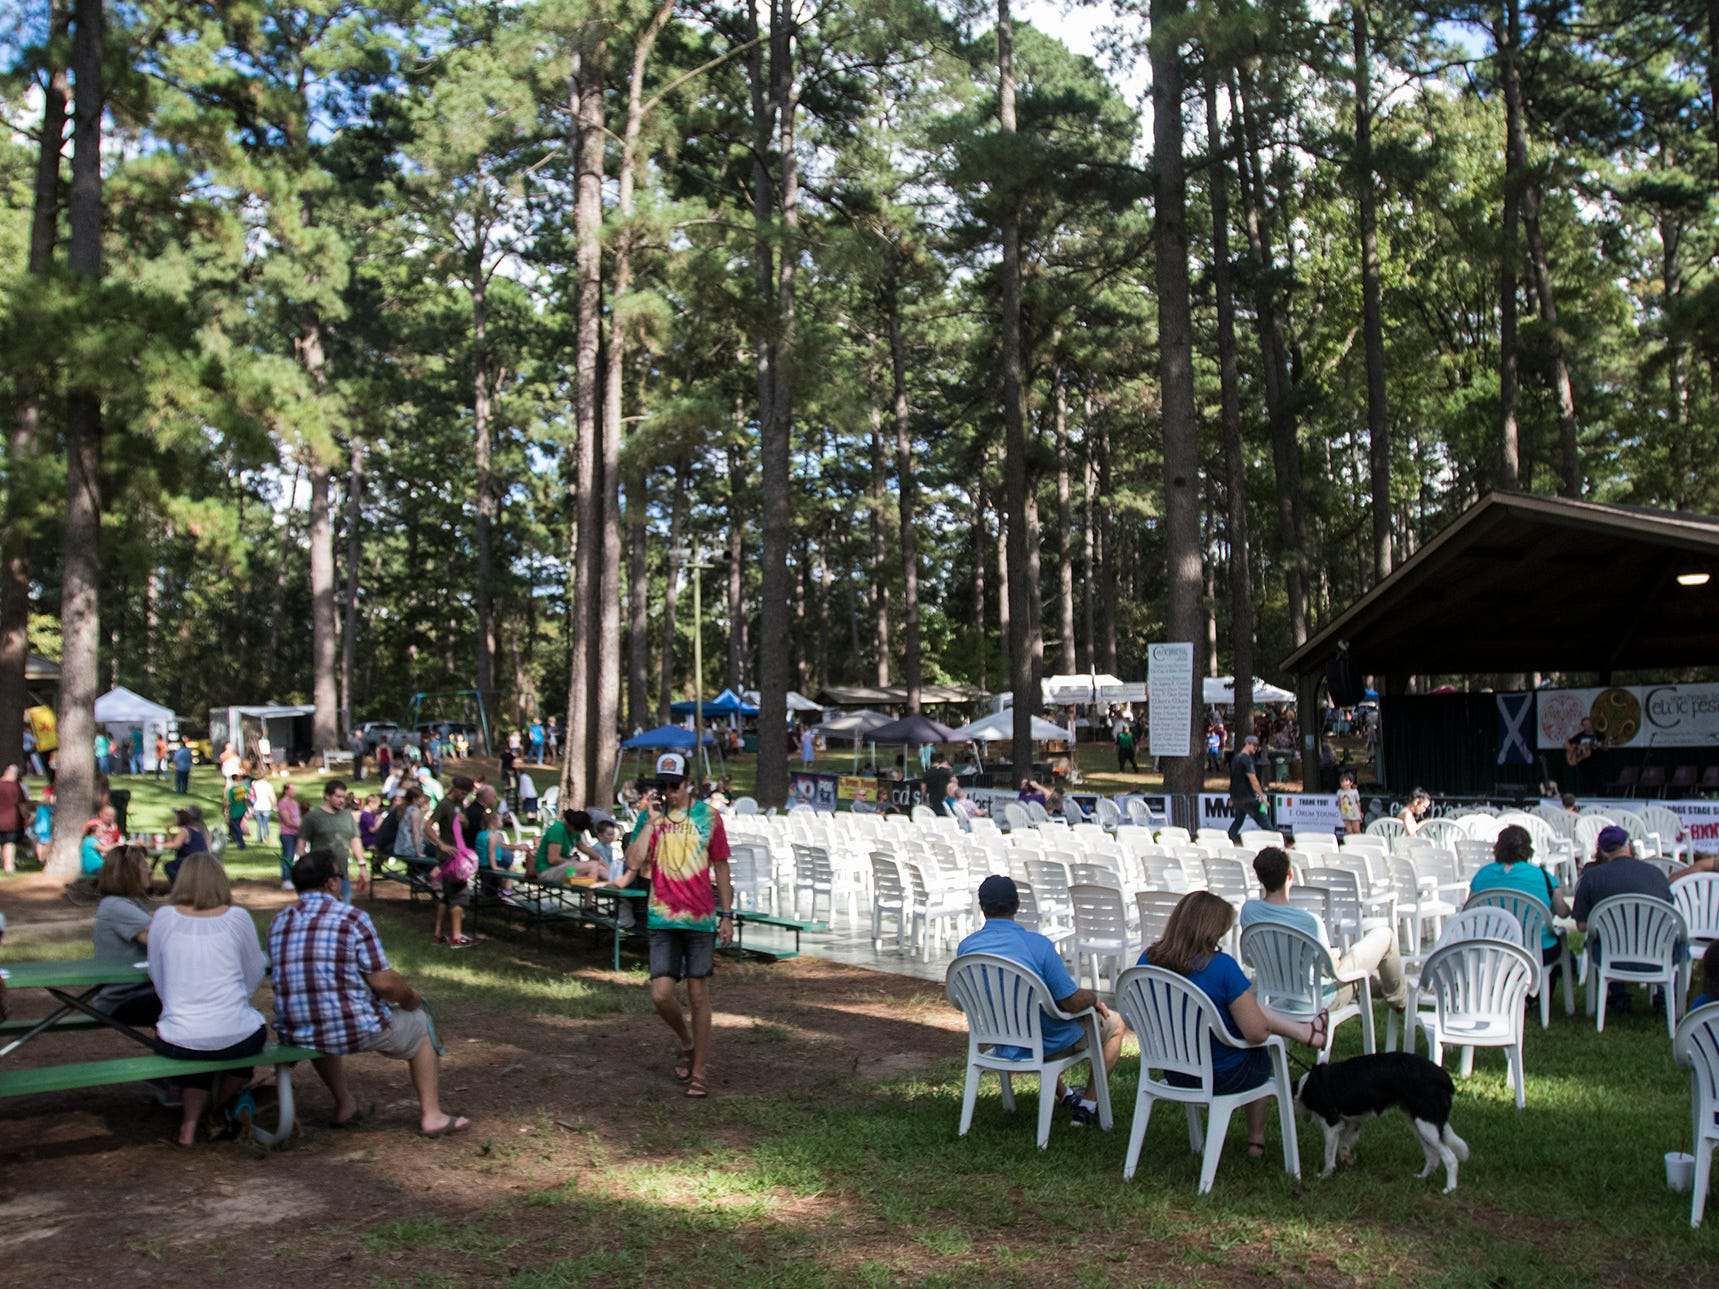 The Northeast Louisiana Celtic Fest brought Celtic music and culture to Kiroli Park in West Monroe, La. on Oct. 6.